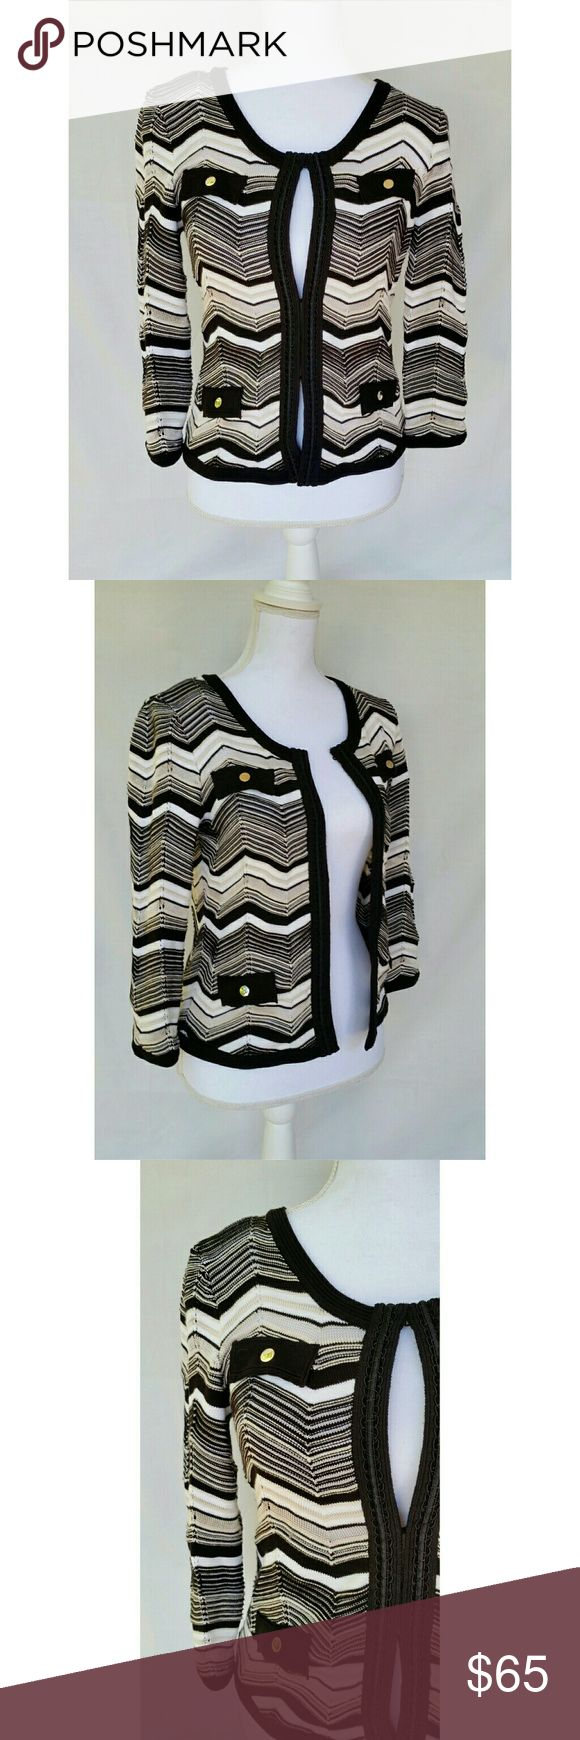 White House Black Market Zig Zag Sweater Jacket White House Black Market Stripe Knit Cardigan. Super comfy! Size small. Excellent like new condition. Sold out online.  Structured knit sweater fills the role of a jacket with a softer manner. Detailed with button-accented faux flap pockets and dressmaker trim, in the neutrals you need.  Classic silhouette. Knit with vertical rows of open pointelle stitches. Satin passementerie trim along the front placket. Soft goldtone accent buttons. White…